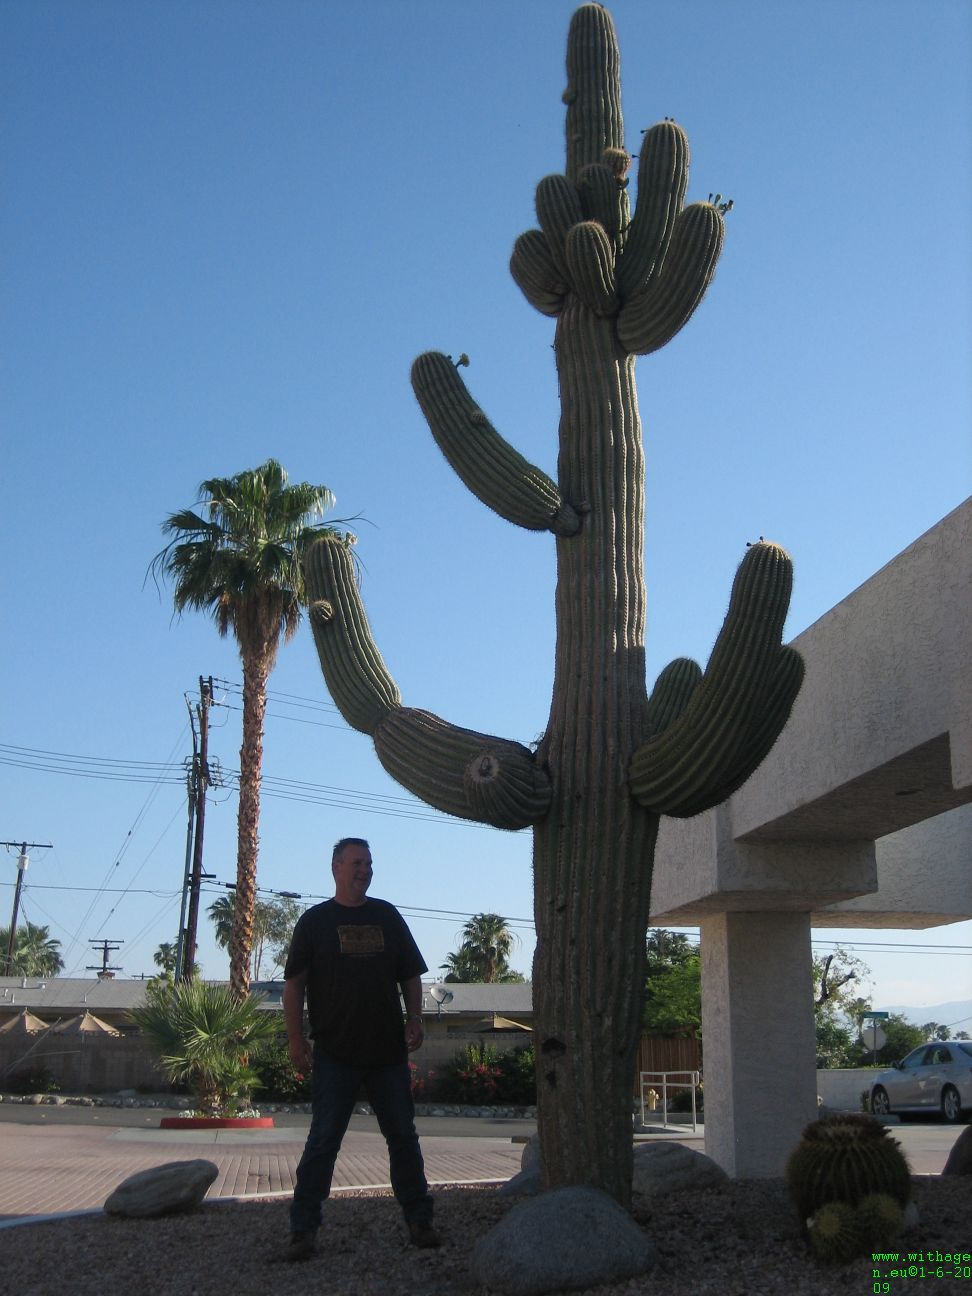 Hotel cactus in palm springs